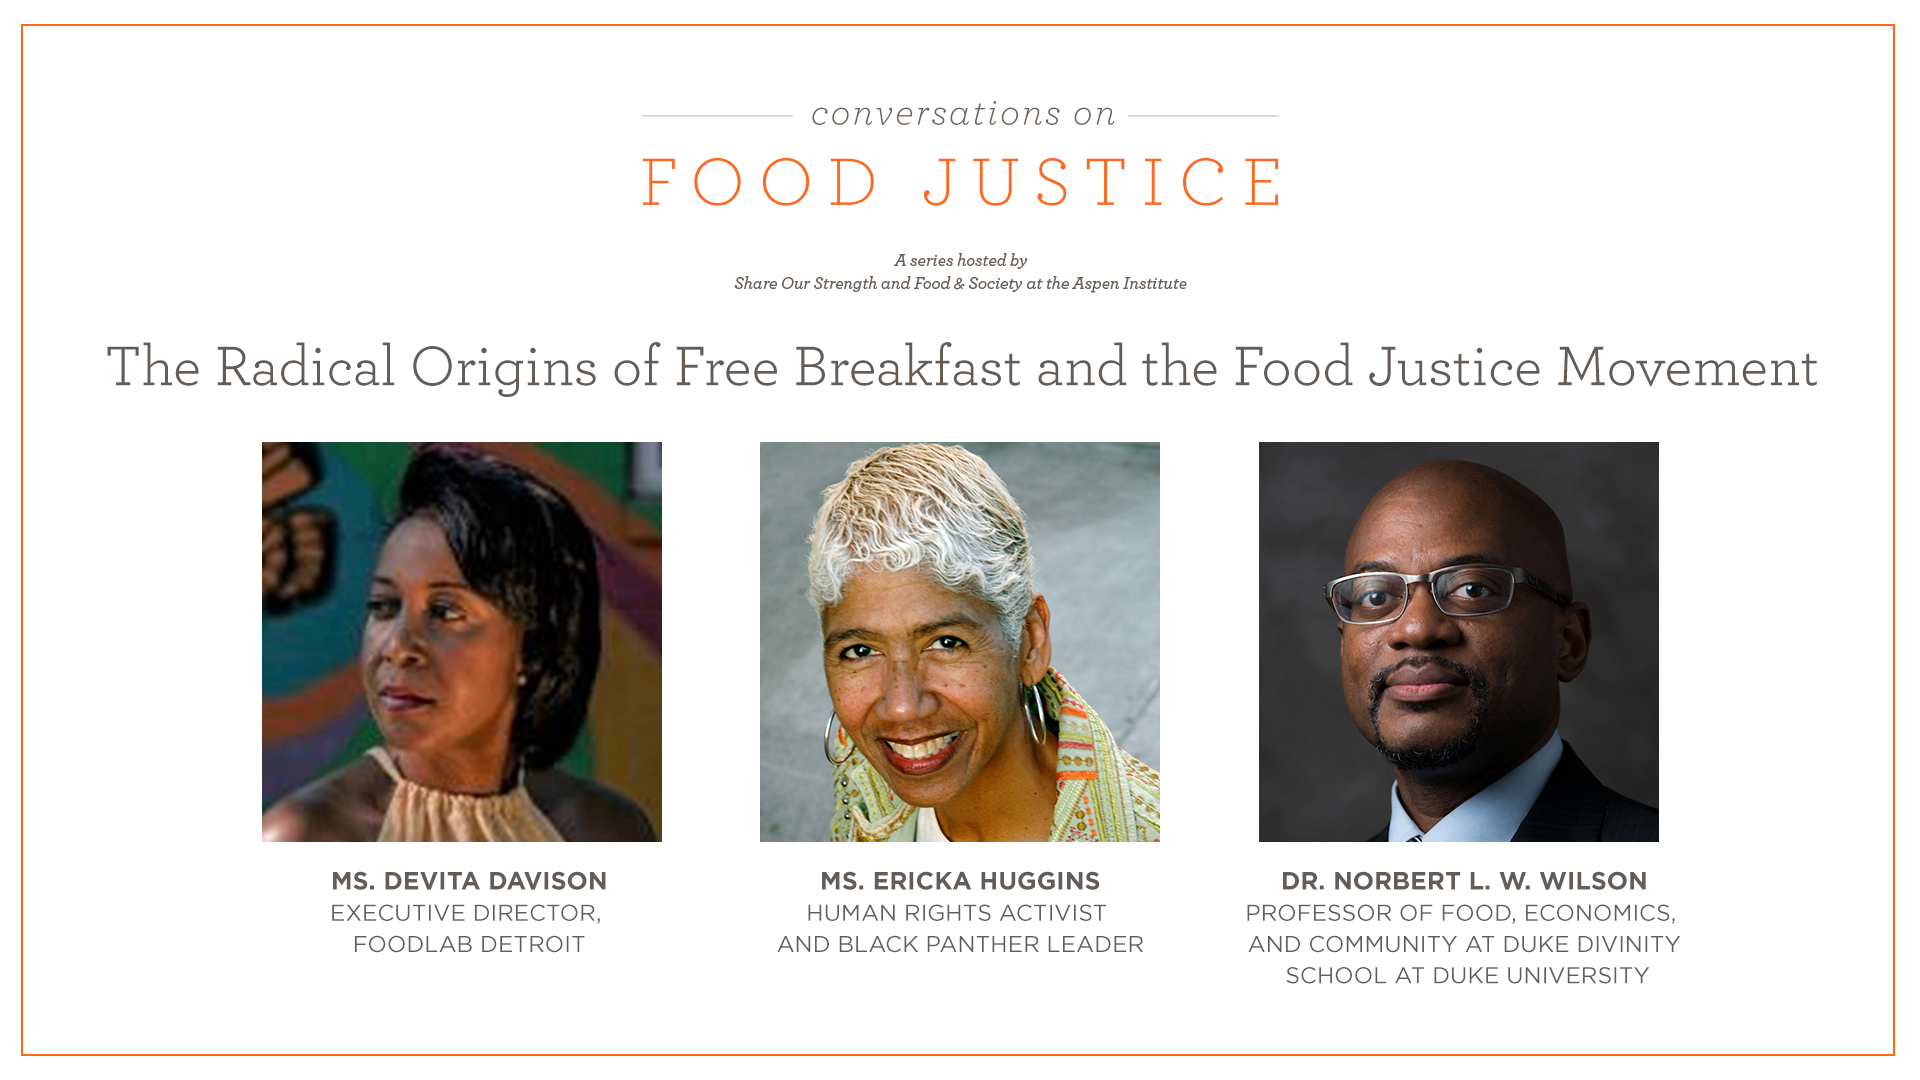 Conversations on Food Justice series: The Radical Origins of Free Breakfast and the Food Justice Movement